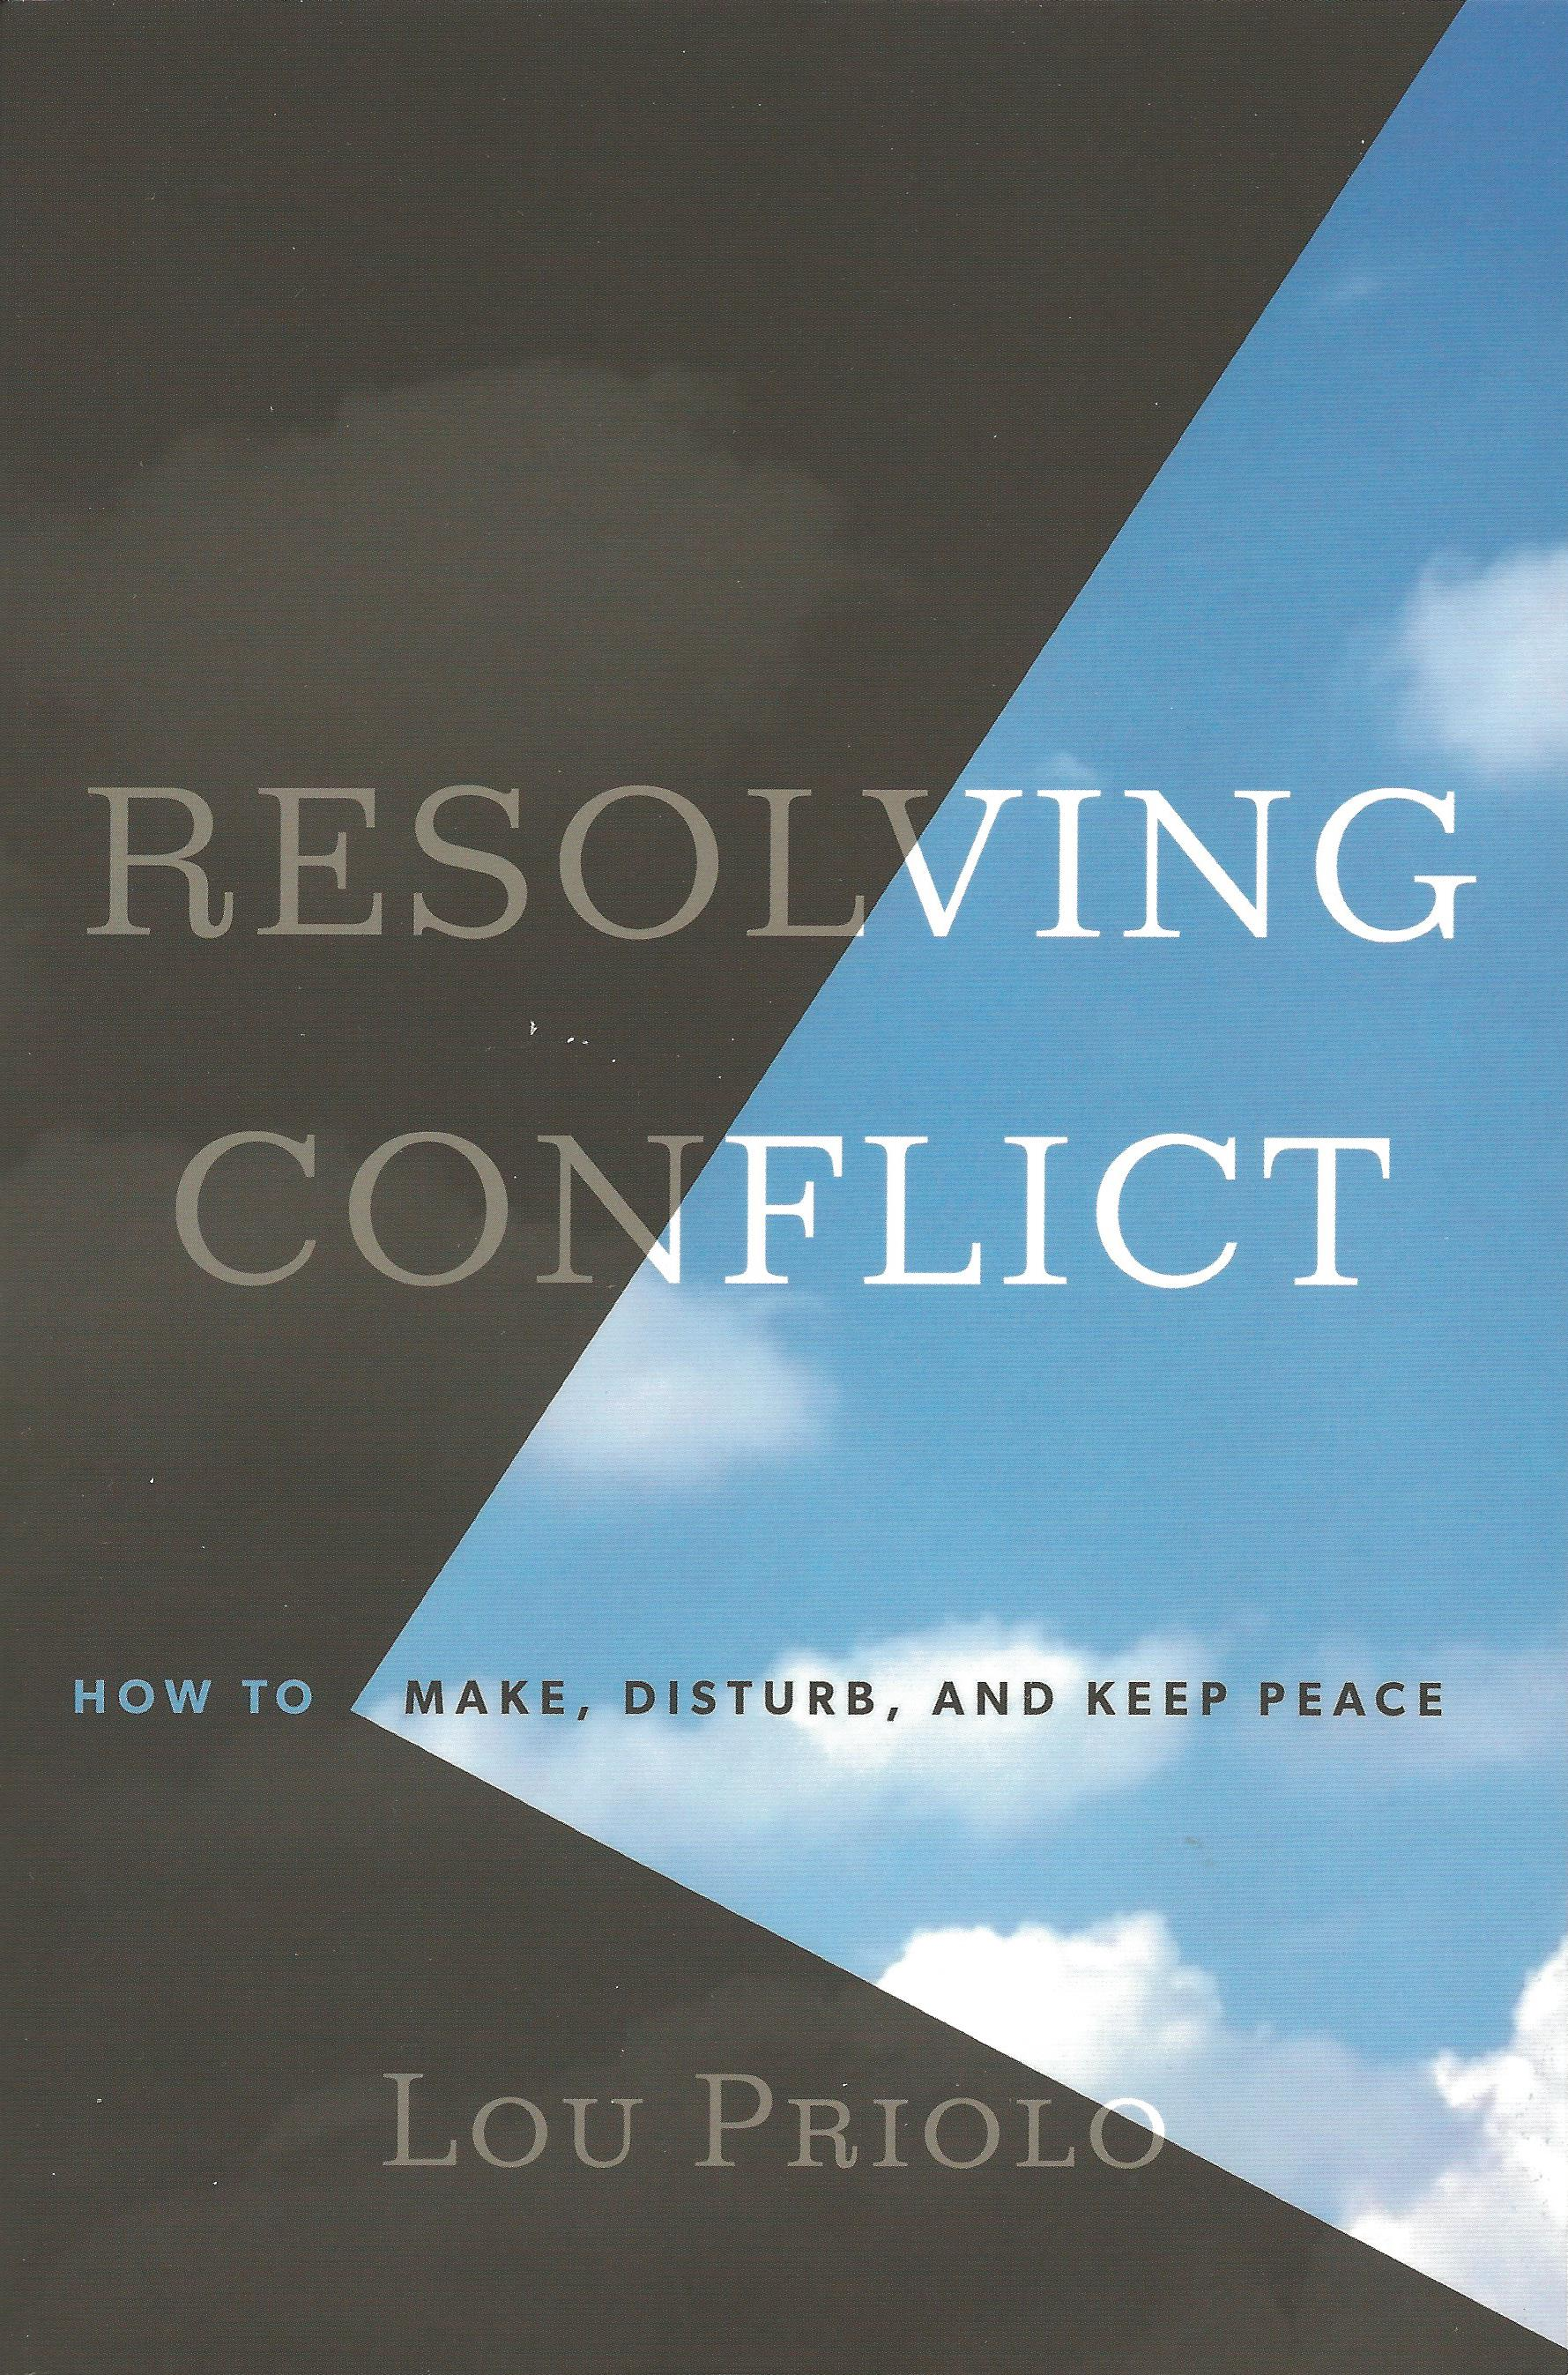 RESOLVING CONFLICT Lou Priolo